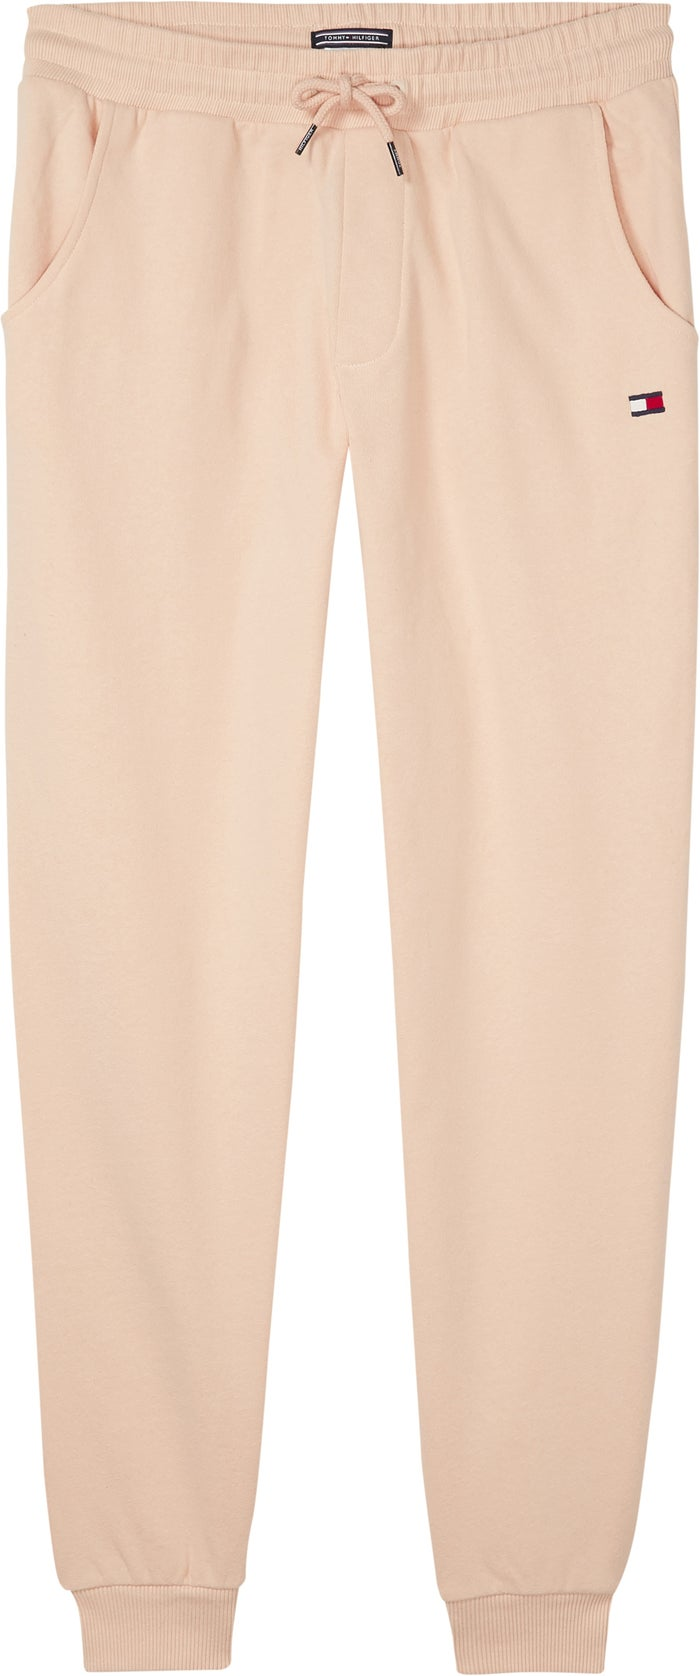 Tommy Hilfiger Track Women's Jogging Pants